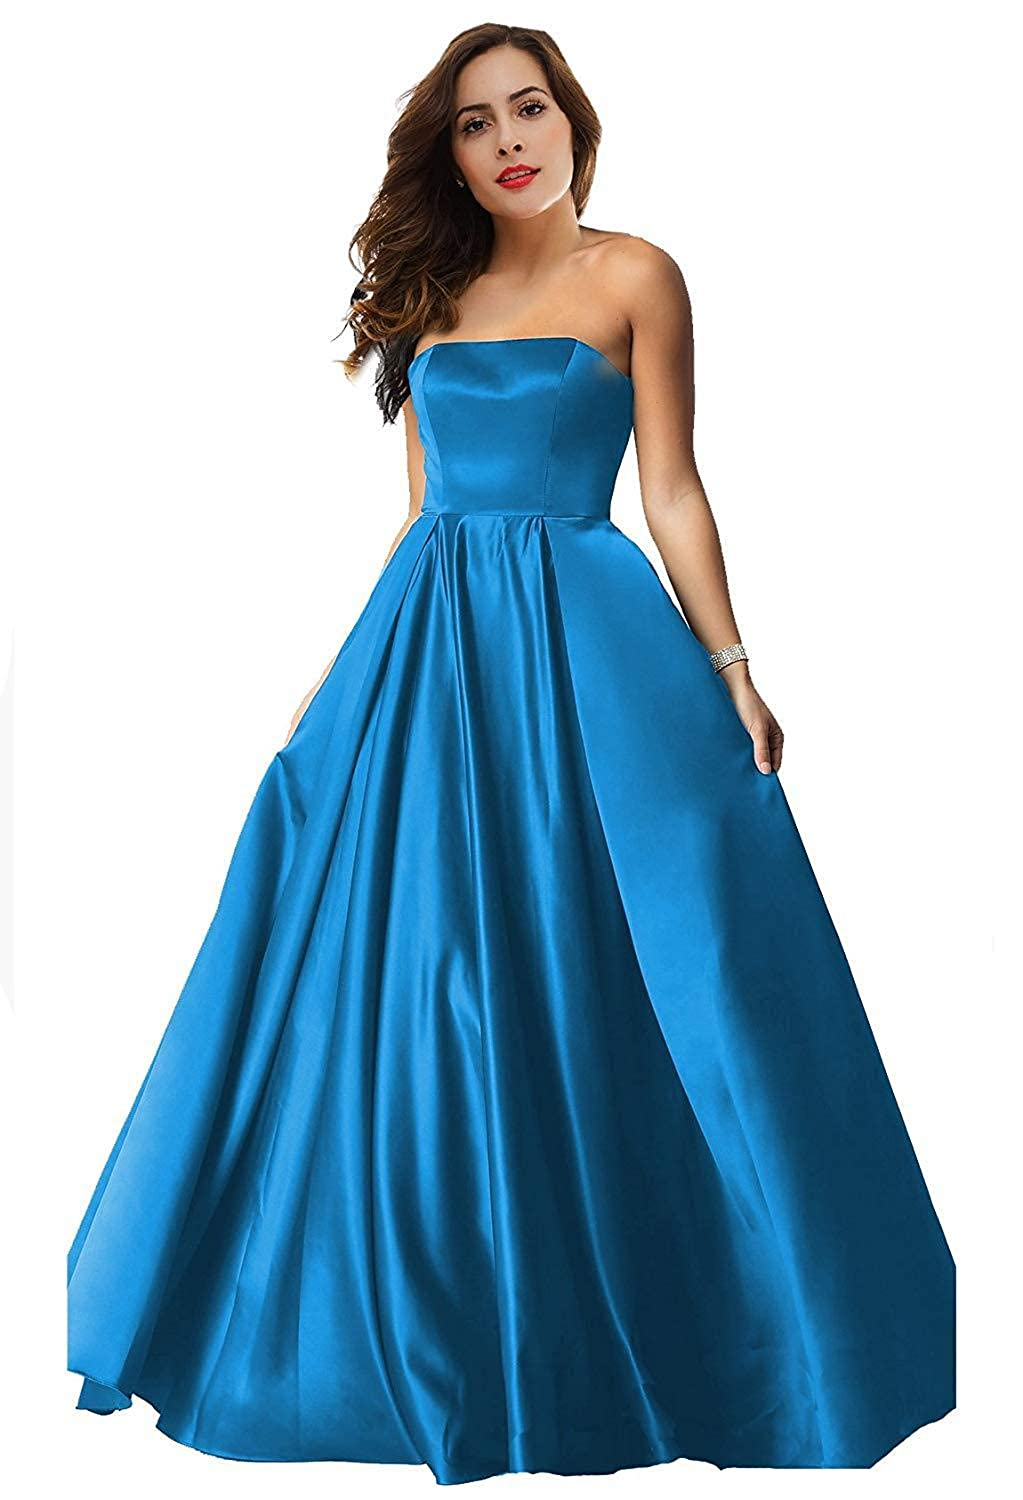 bluee Womens Satin Long Prom Dresses 2019 Floor Length Strapless Evening Gowns P179